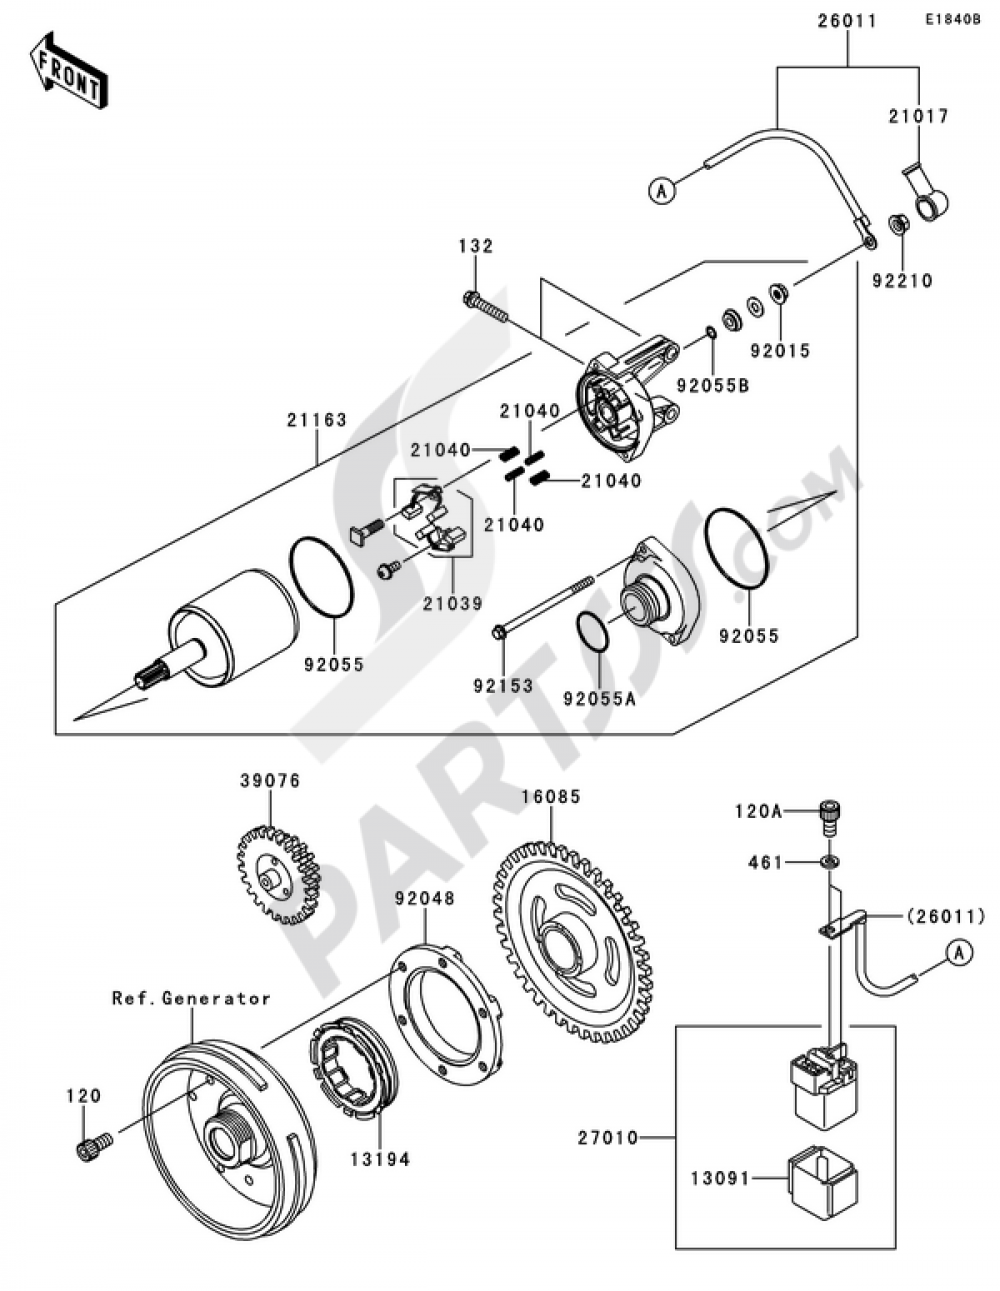 Torica Ignition Switch Wiring Diagram from s3.eu-central-1.amazonaws.com